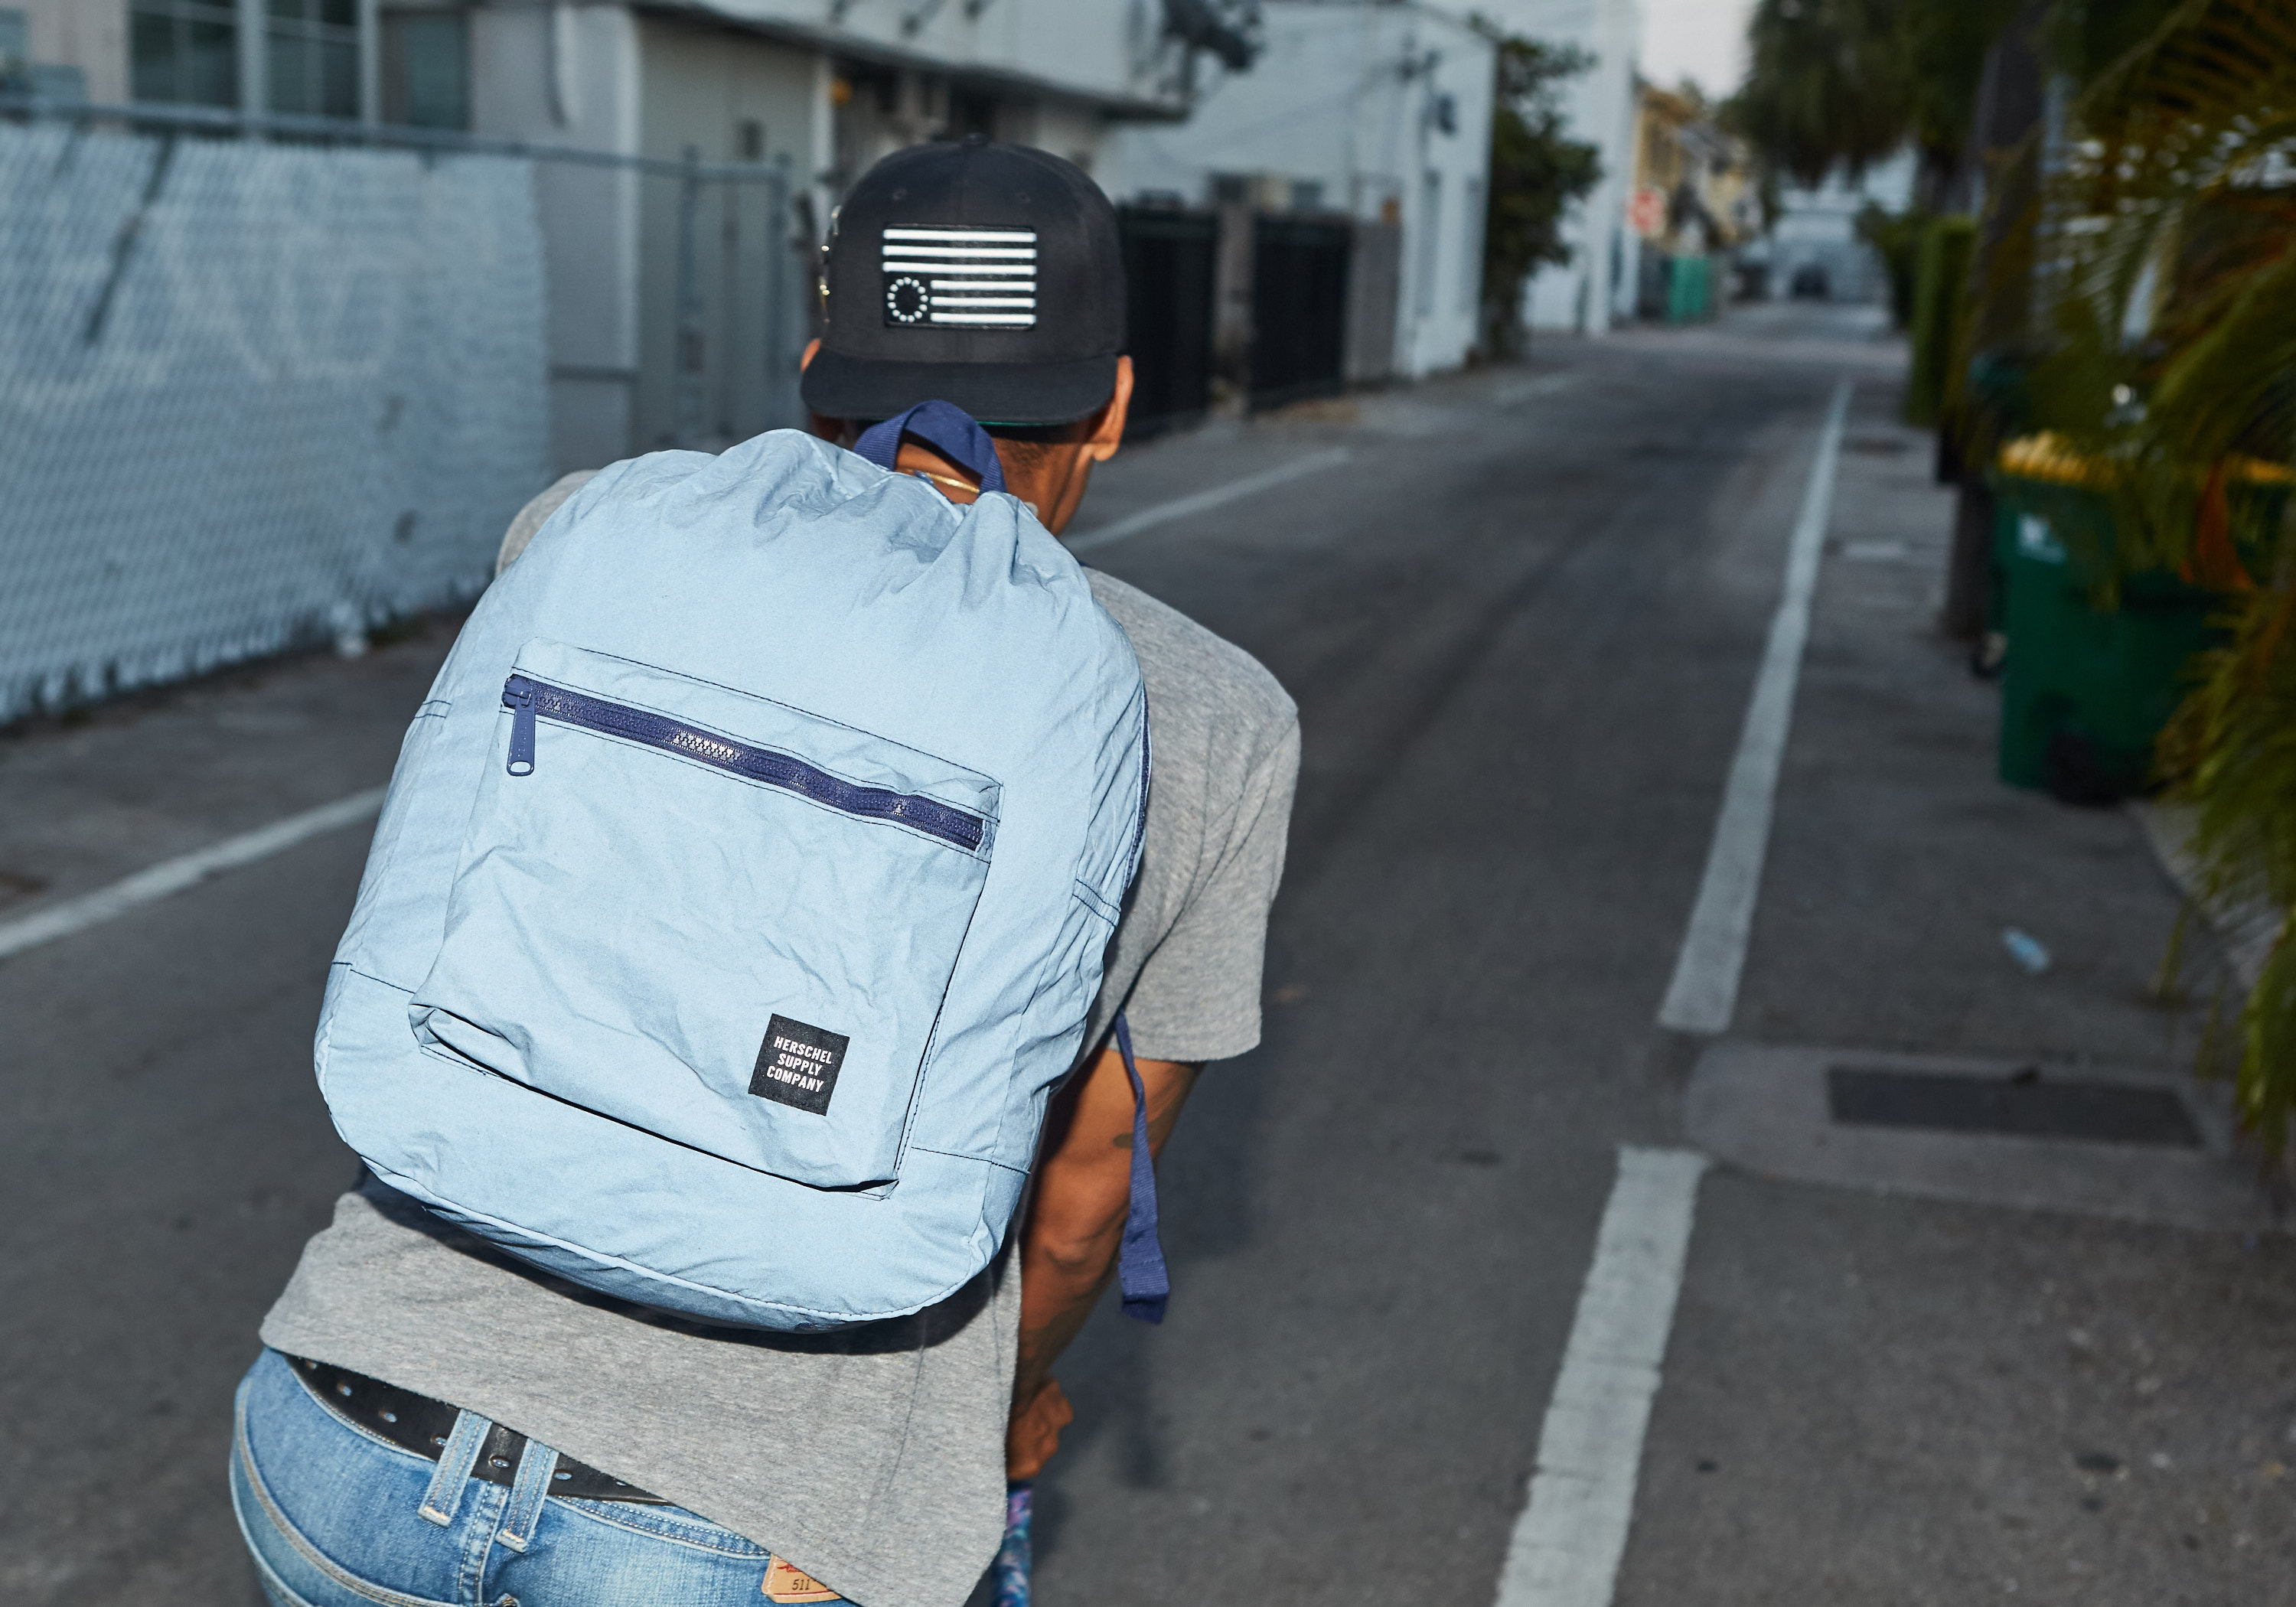 herschel_supply_co_wordintown_copyright_cinelli_levis_convers_fixed_gear_fixie_bycicles_4